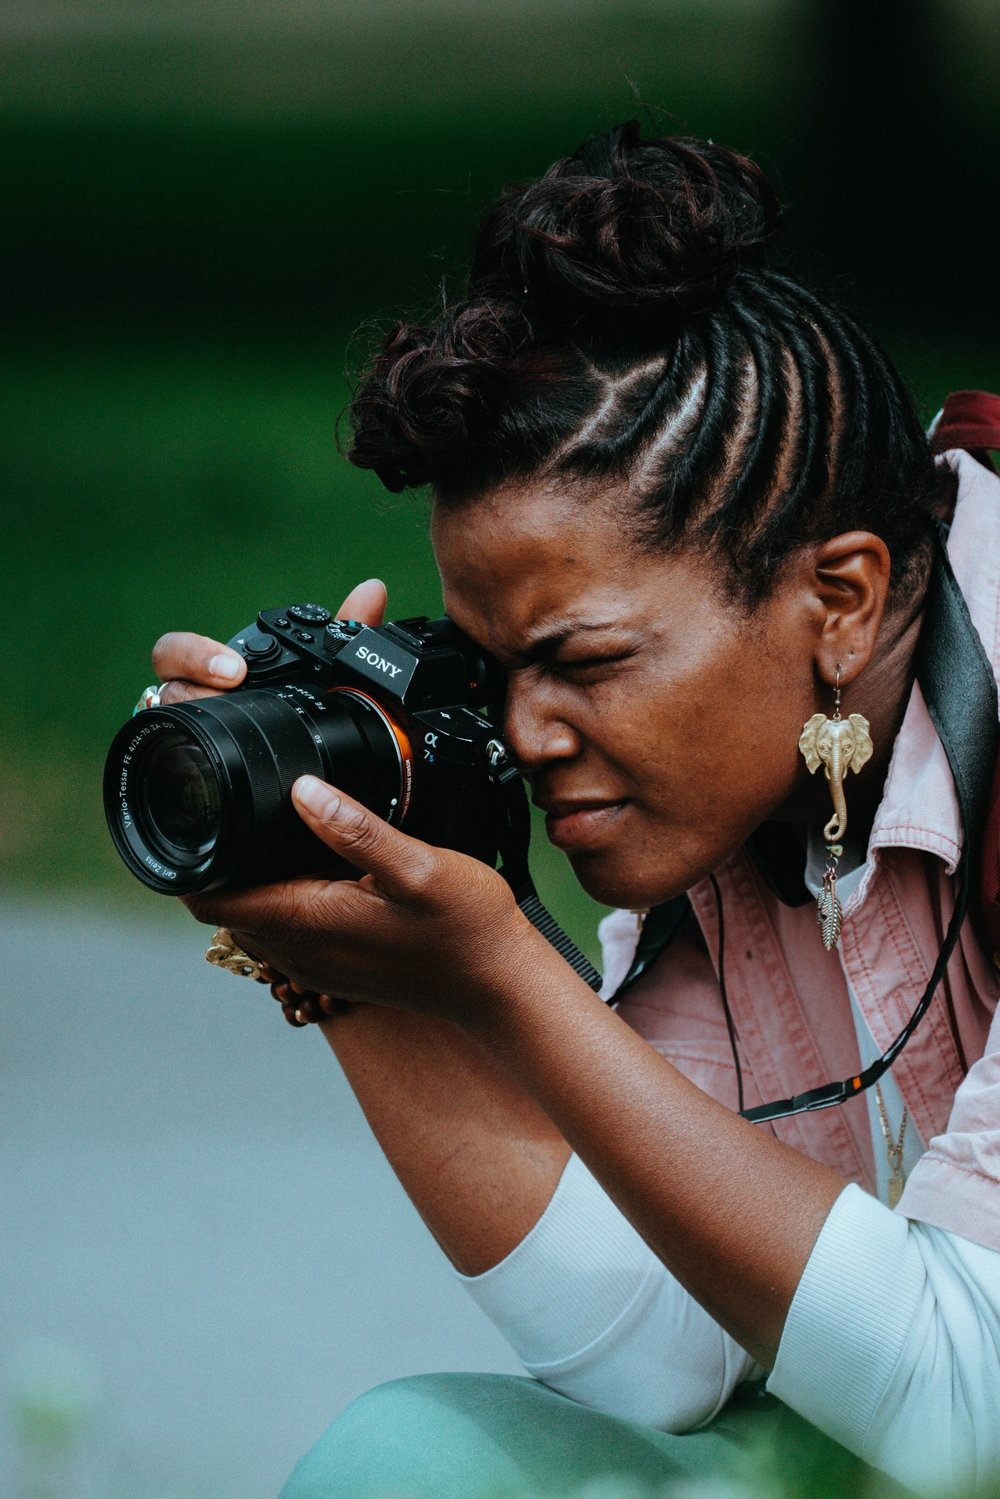 CAPTURE - Lifestyle photography & story based video solutions